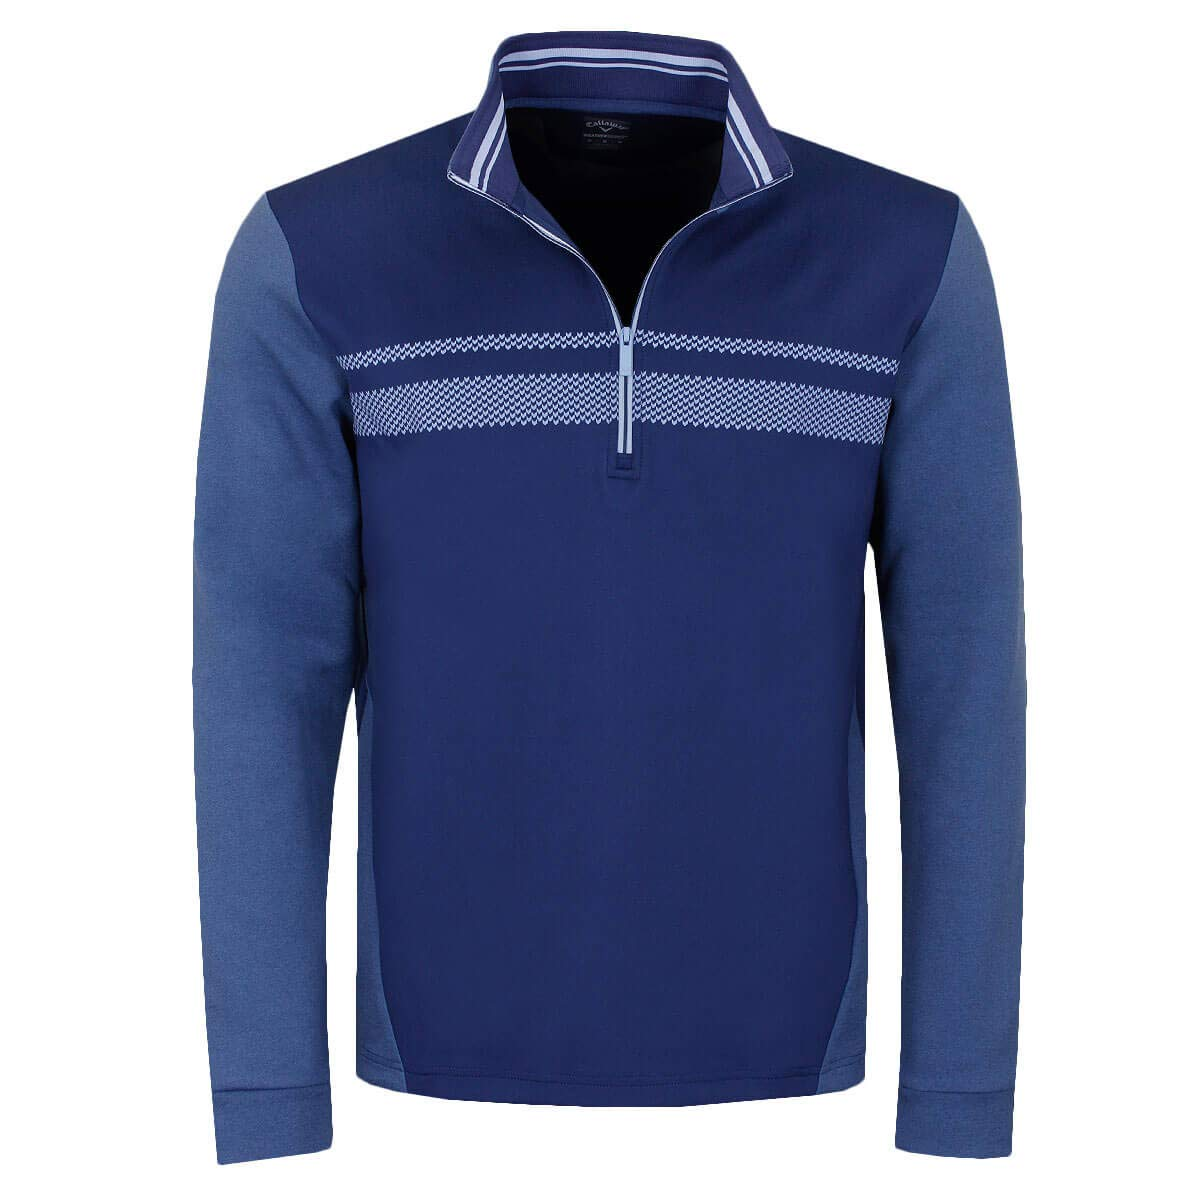 Callaway Golf 2019 Mens 1/4 Zip High Gauge Fleece Thermal Stretch Golf Pullover Medieval Blue Medium by Callaway